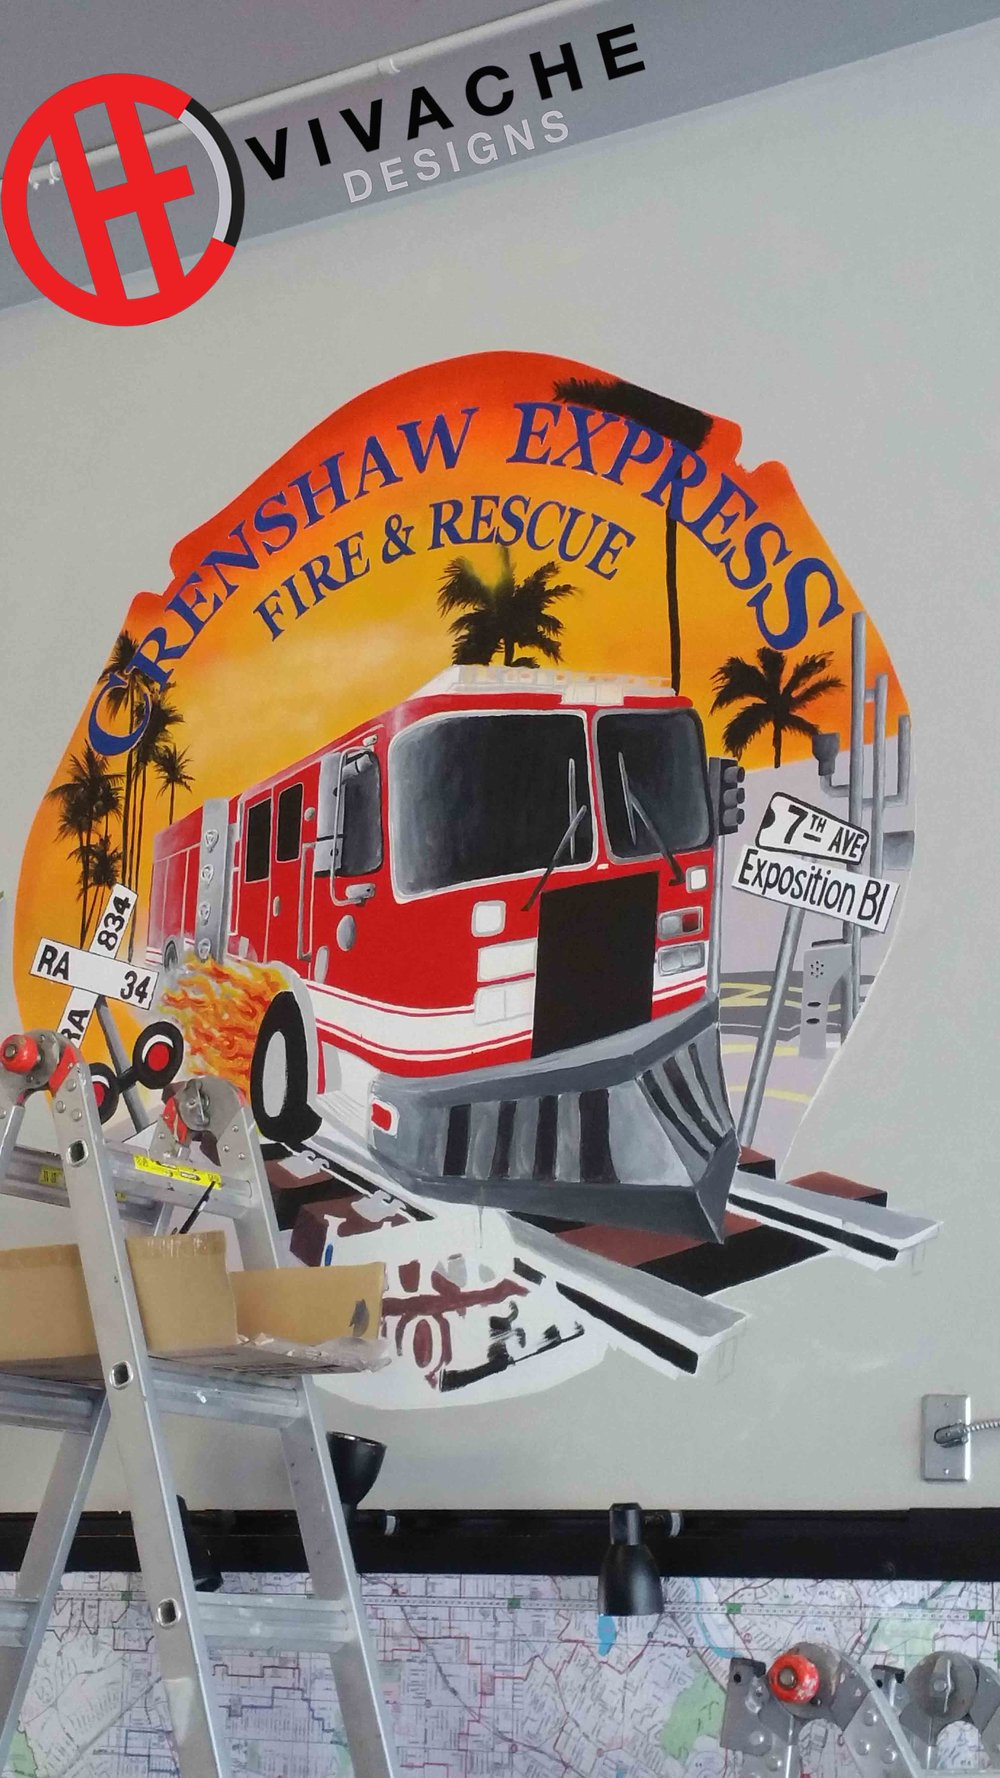 Vivache Designs Painted Wall Murals LAFD Fire Station Mural copy.jpg